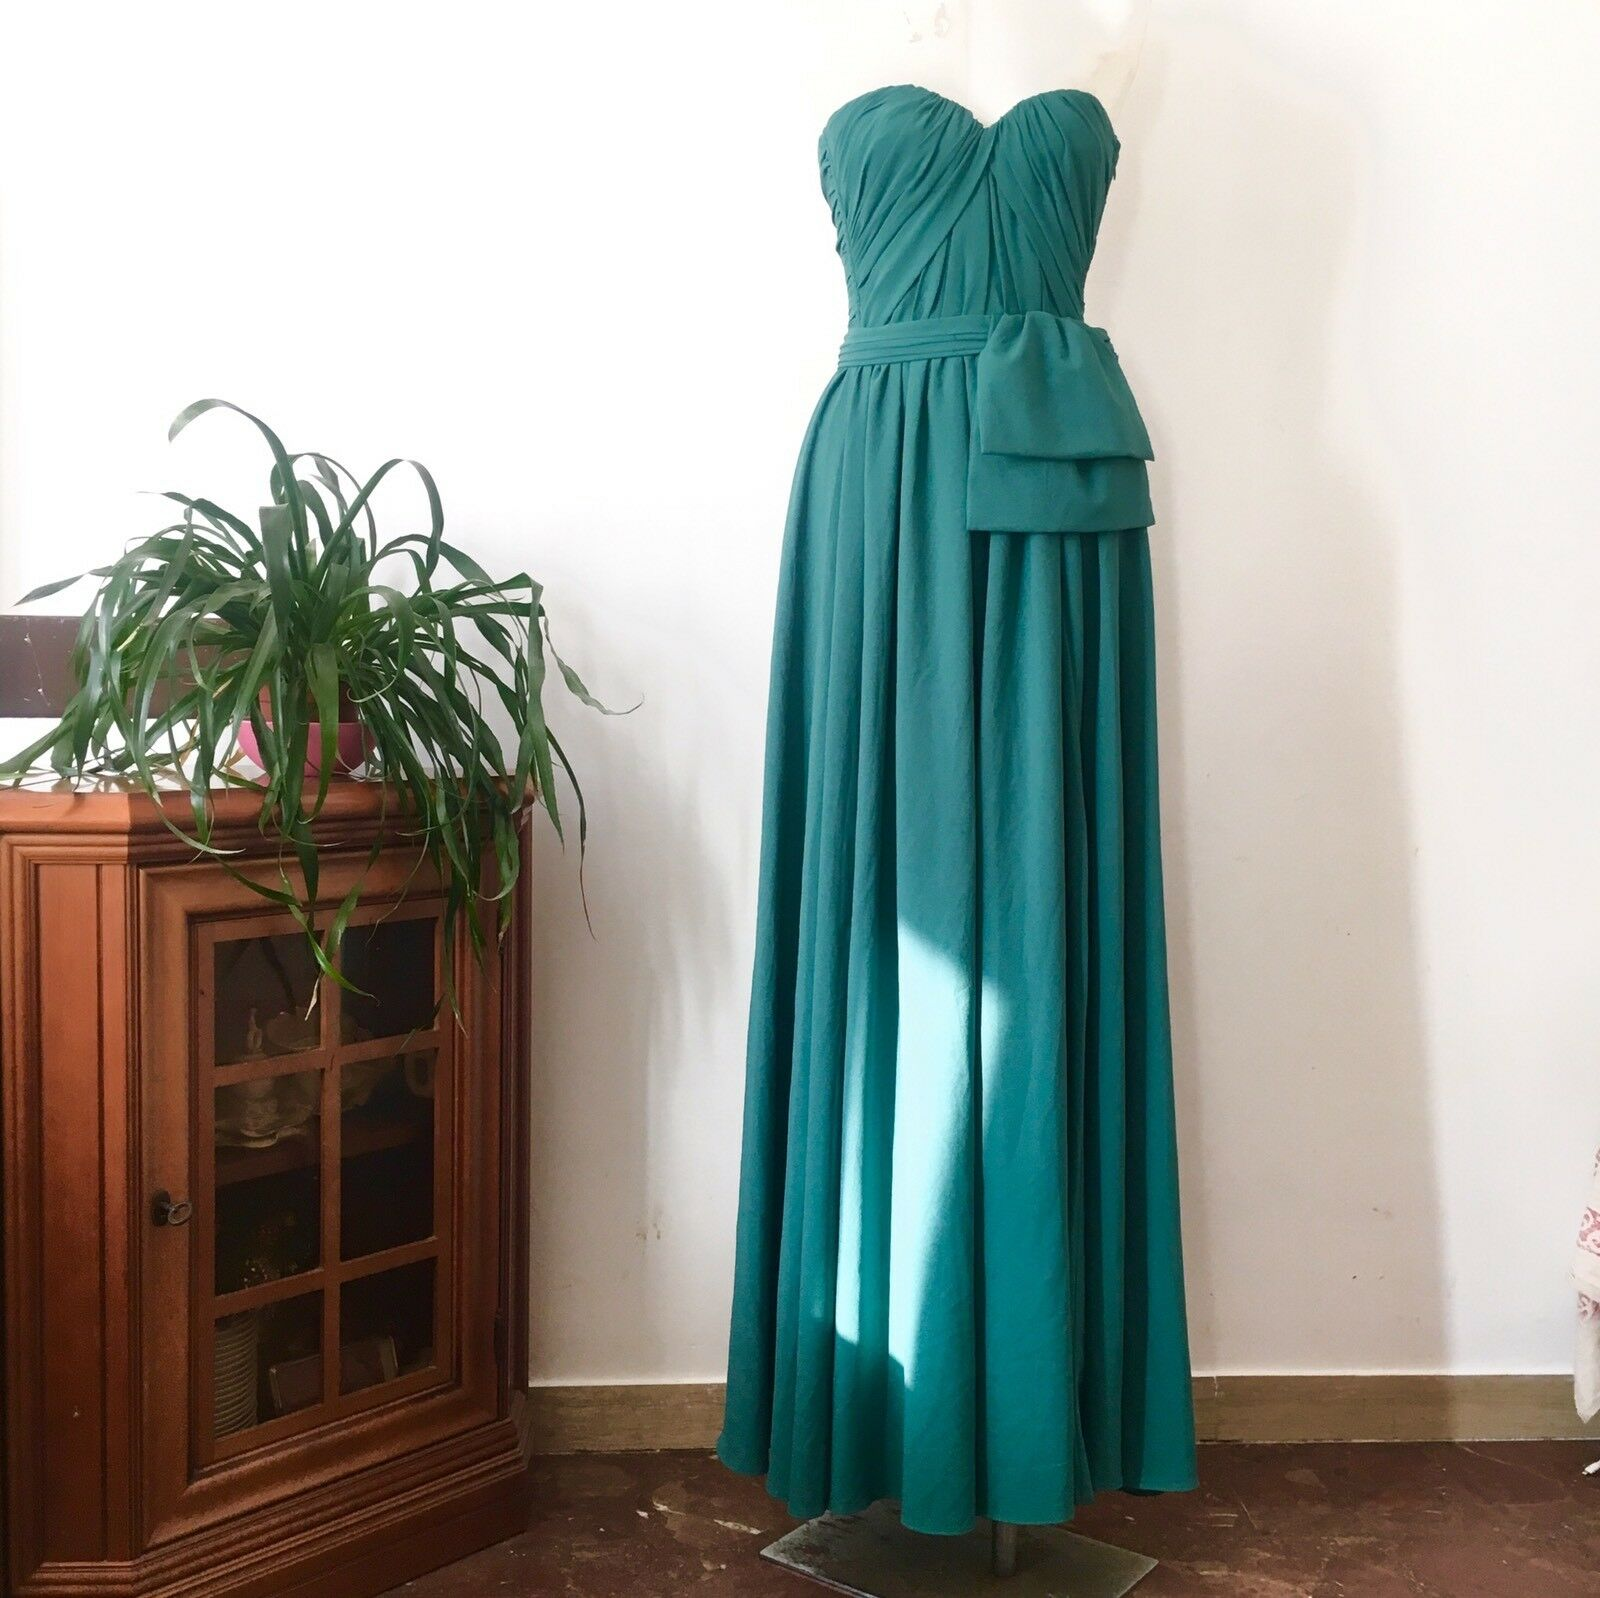 MSGM Party Long Dress, Size IT42, Brand New With With With Tags fdbba5